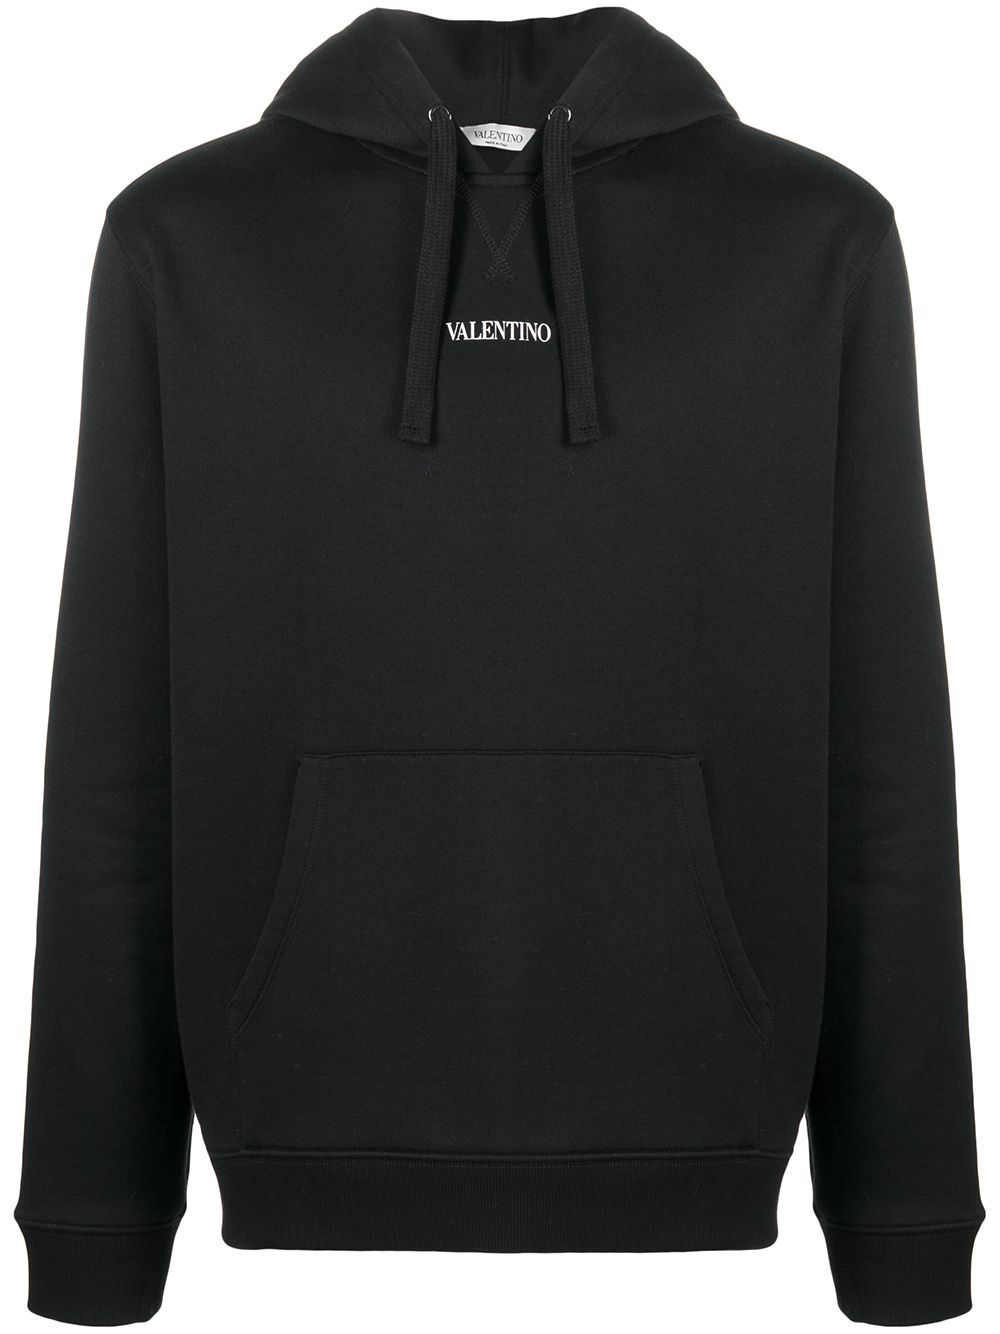 Valentino VALENTINO MEN'S BLACK COTTON SWEATSHIRT